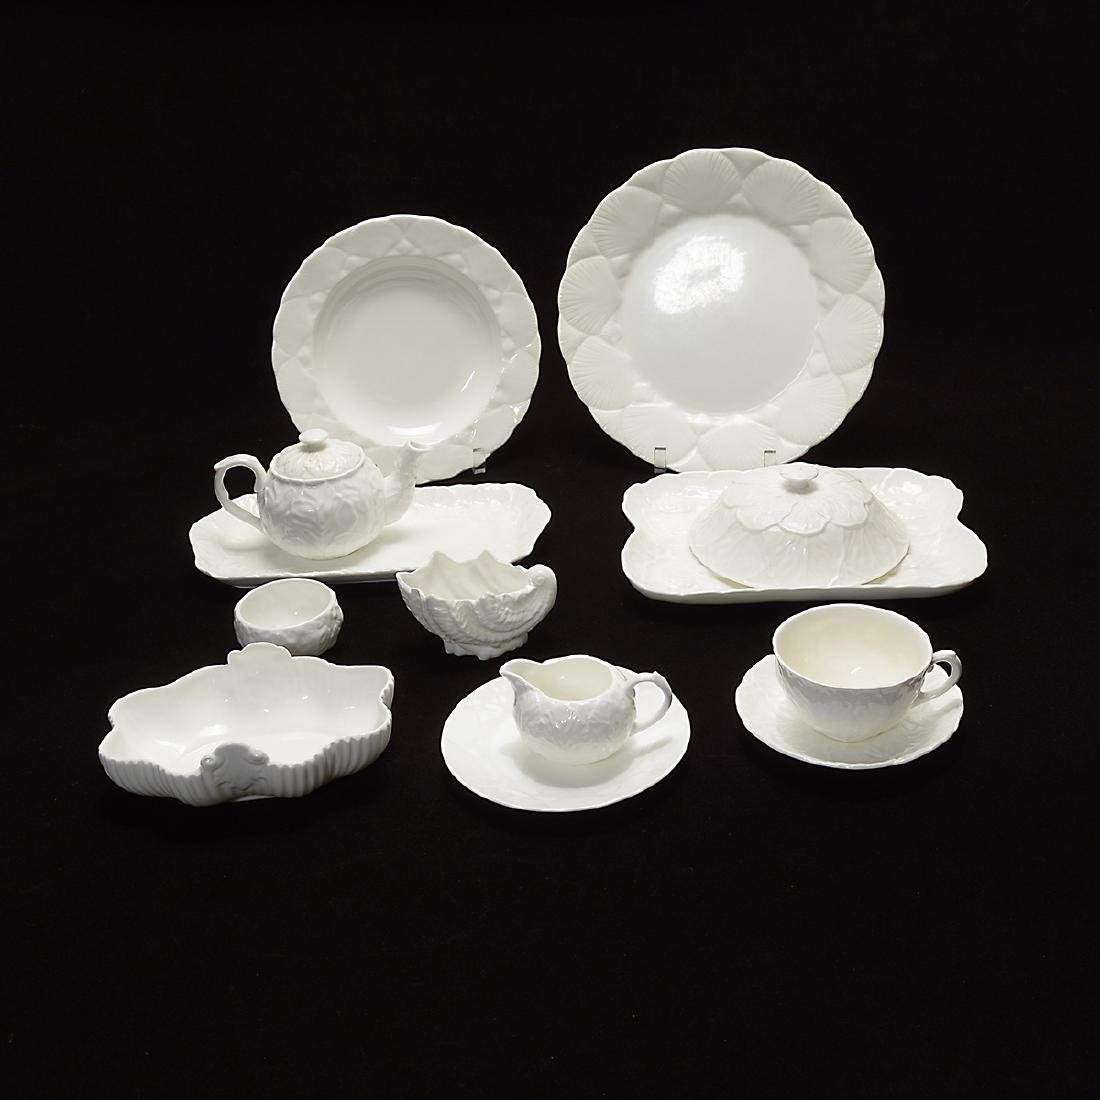 Wedgwood and Coalport Blanc de Chine Sets